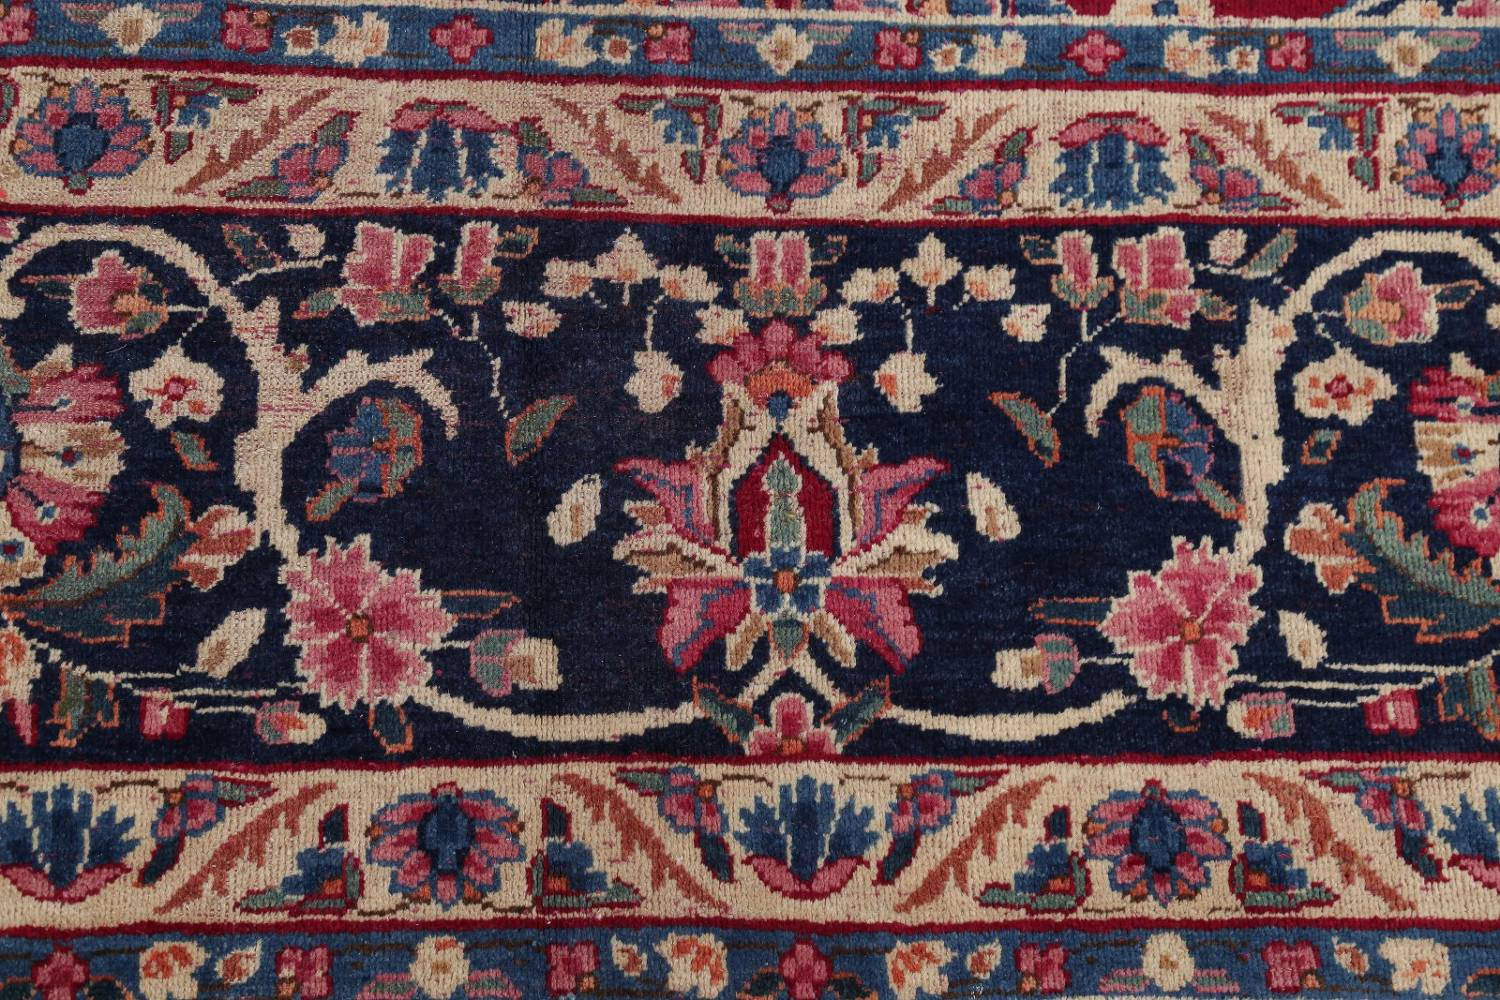 All-Over Floral 11x16 Yazd Persian Area Rug image 7